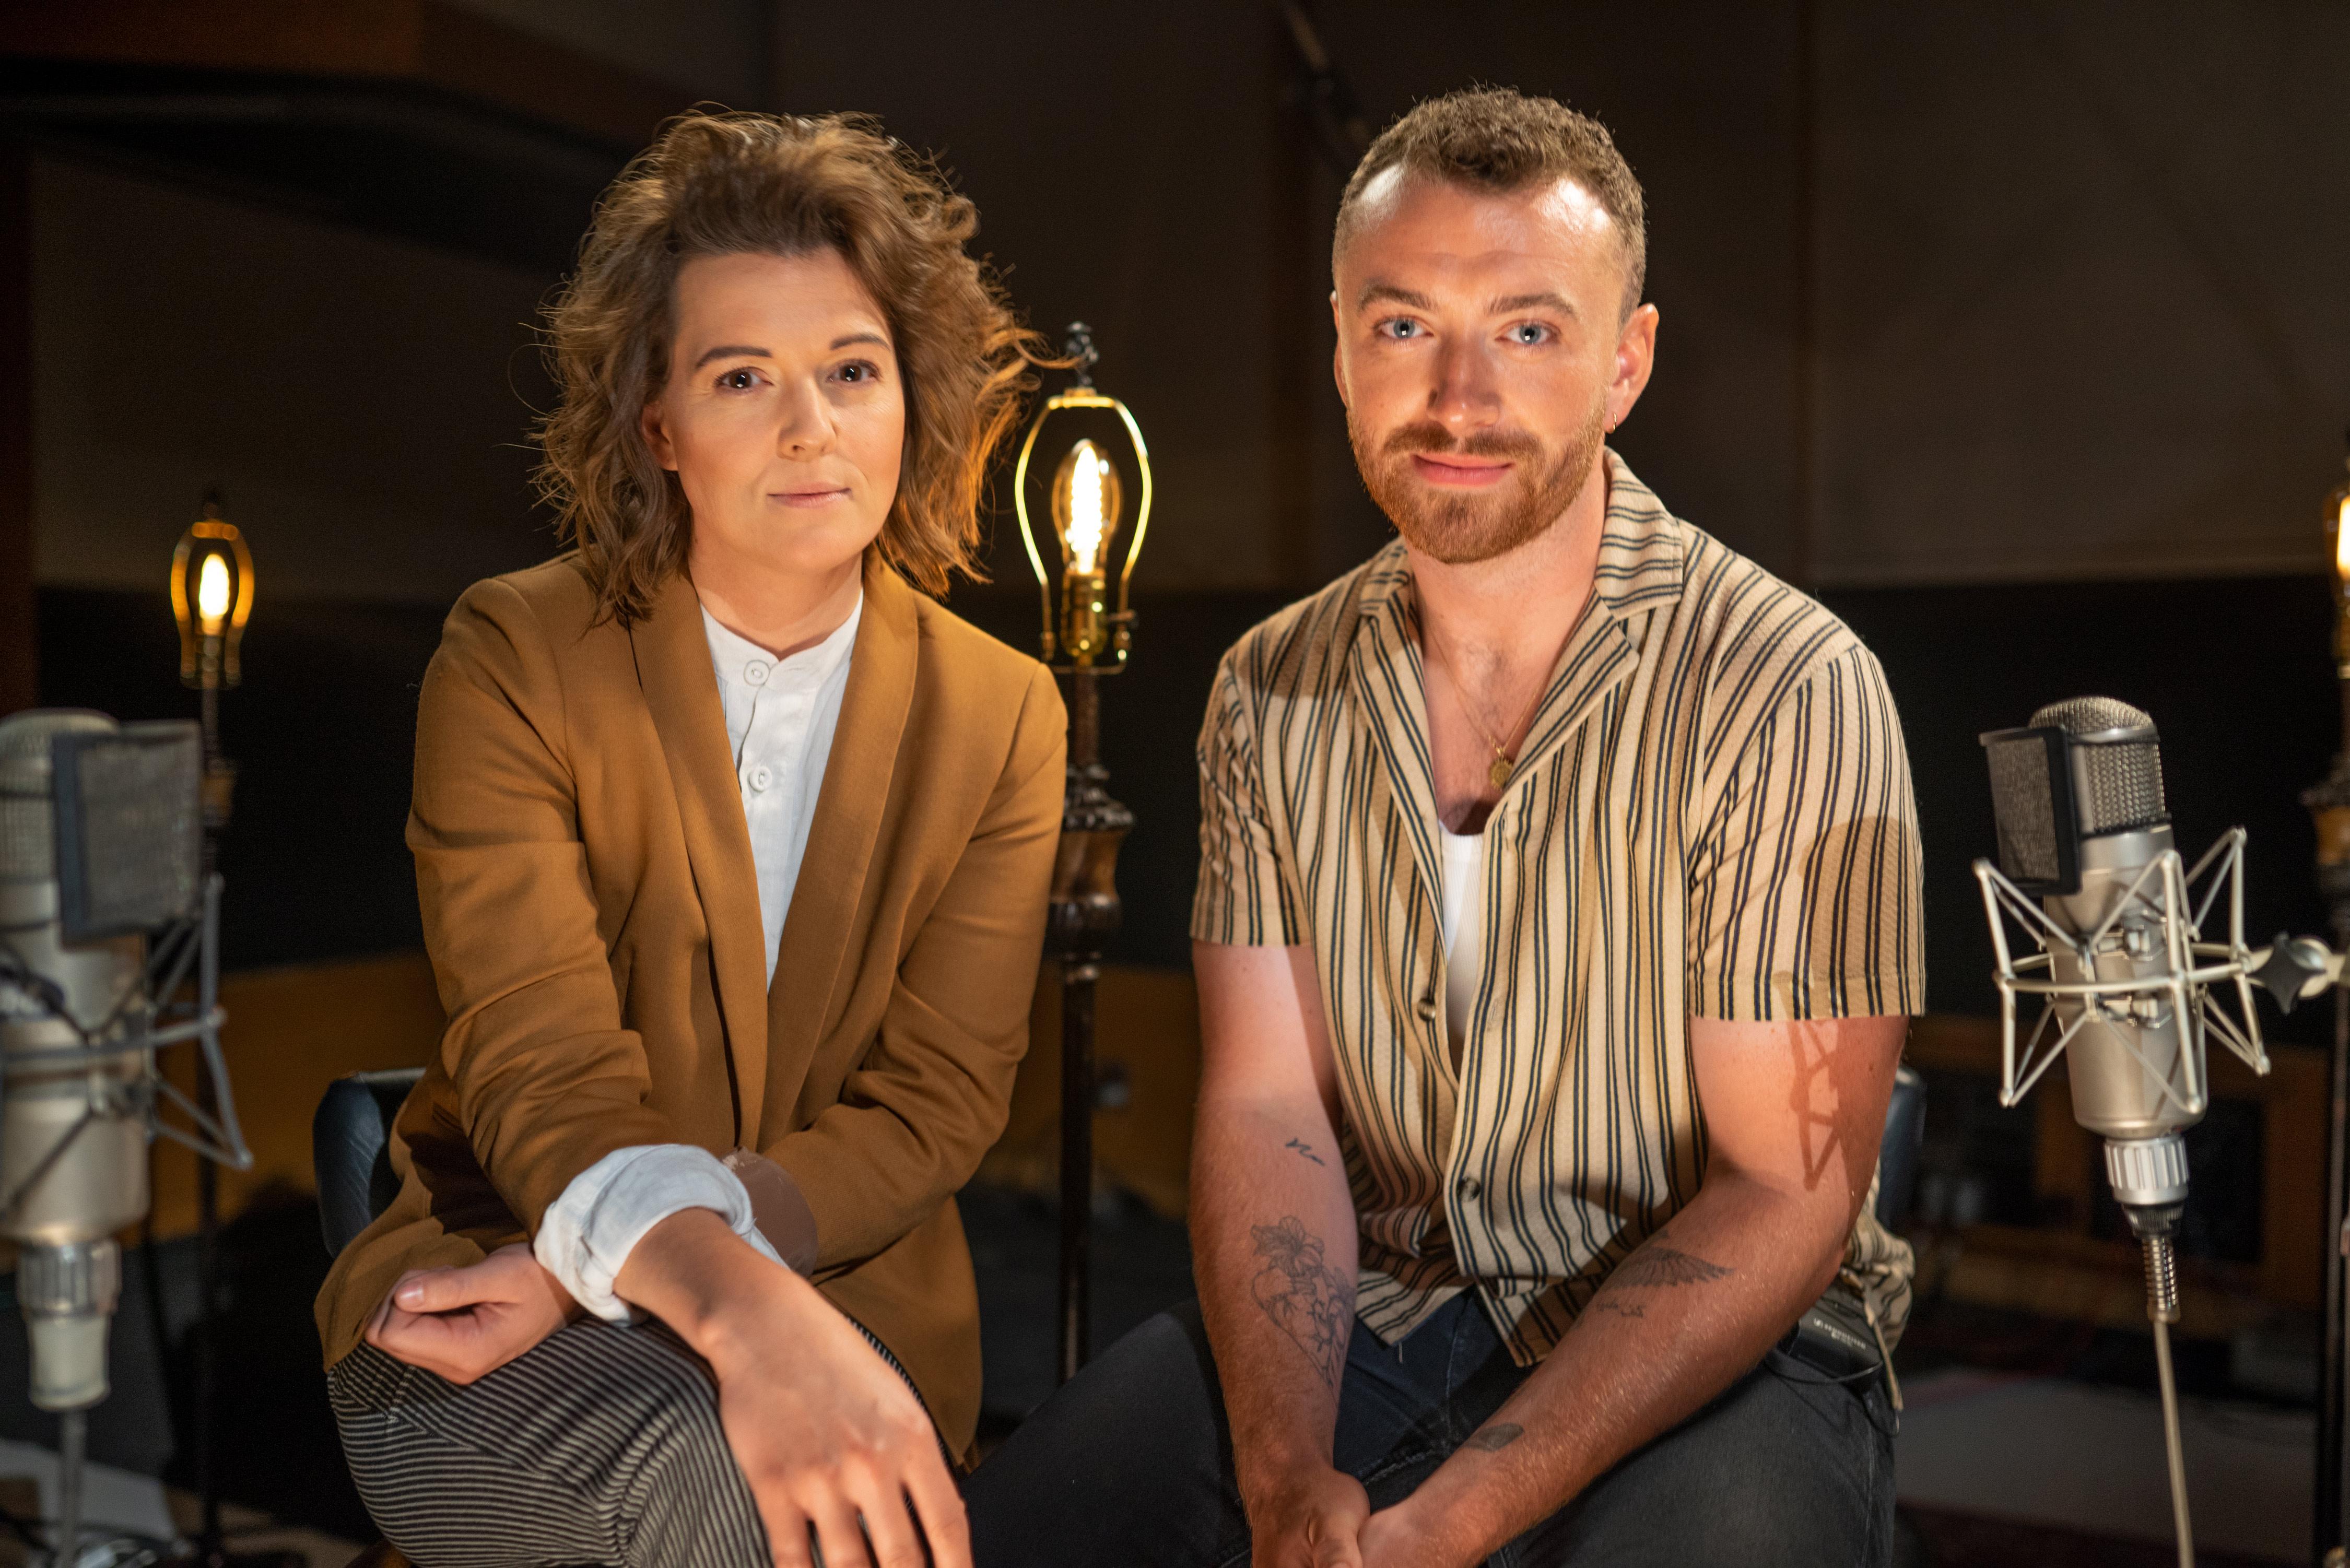 Brandi Carlile Enlists Sam Smith for 'Party of One' Duet